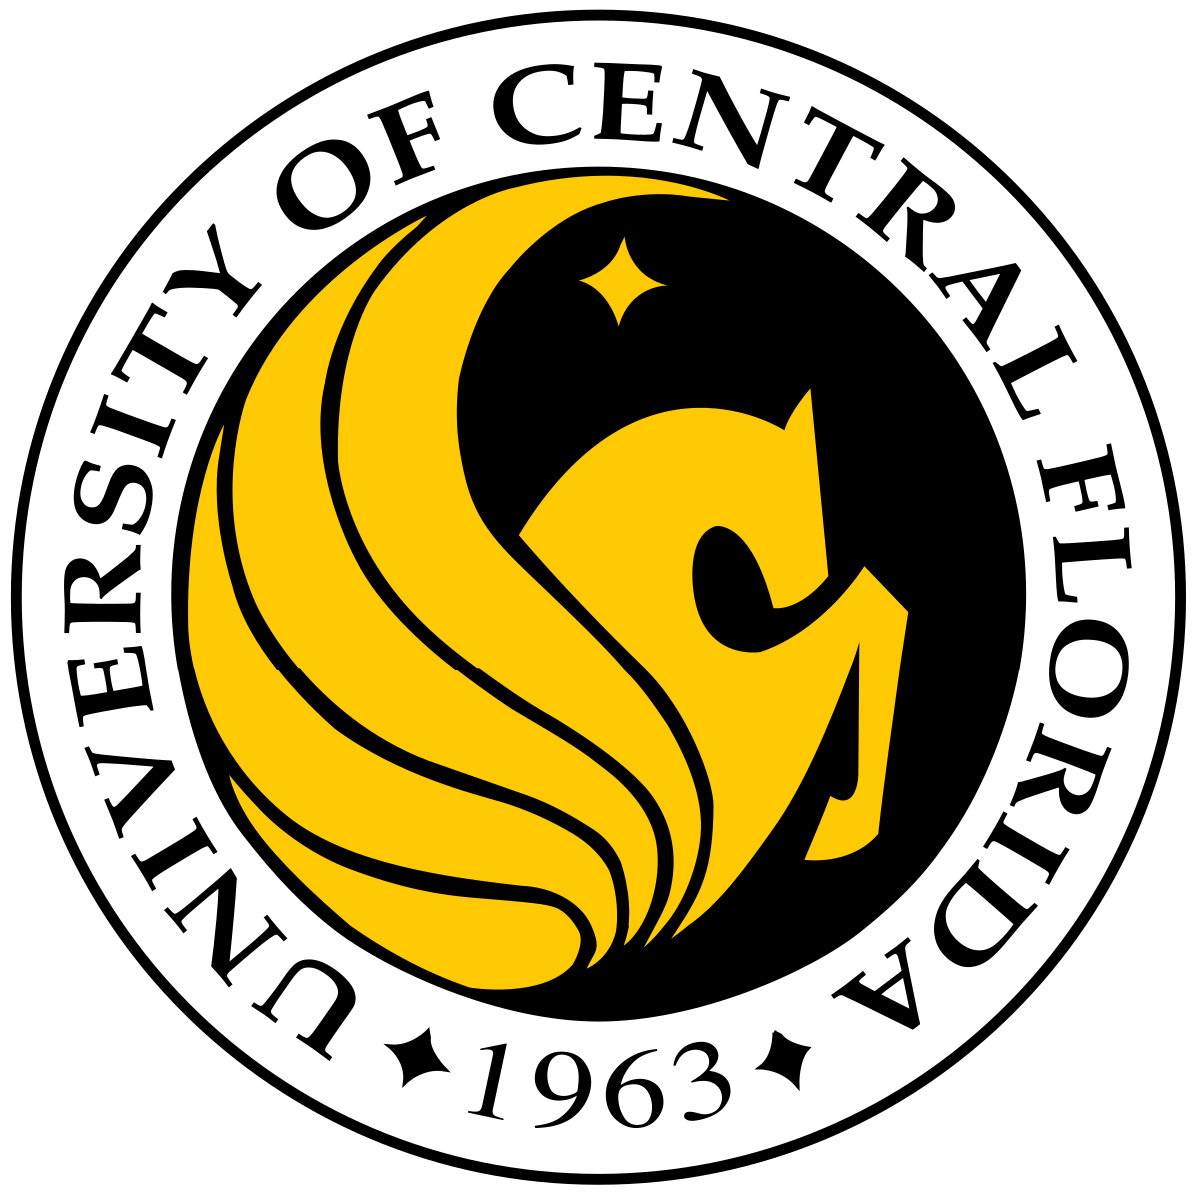 University of central florida logo png. Wikipedia